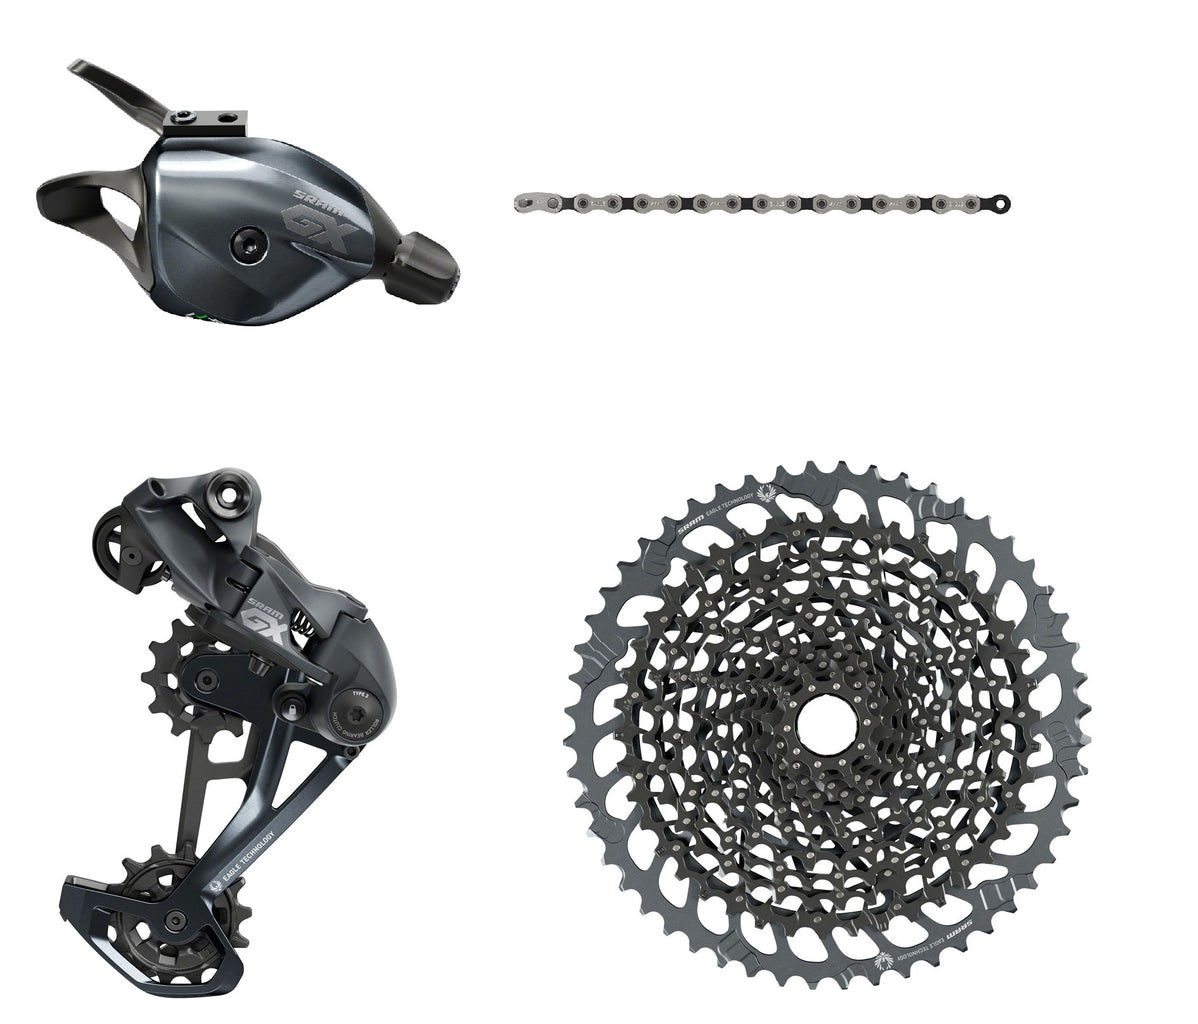 SRAM GX 1x11 Speed Drivetrain Groupset MTB Kit 4 piece Red Trigger Shifter